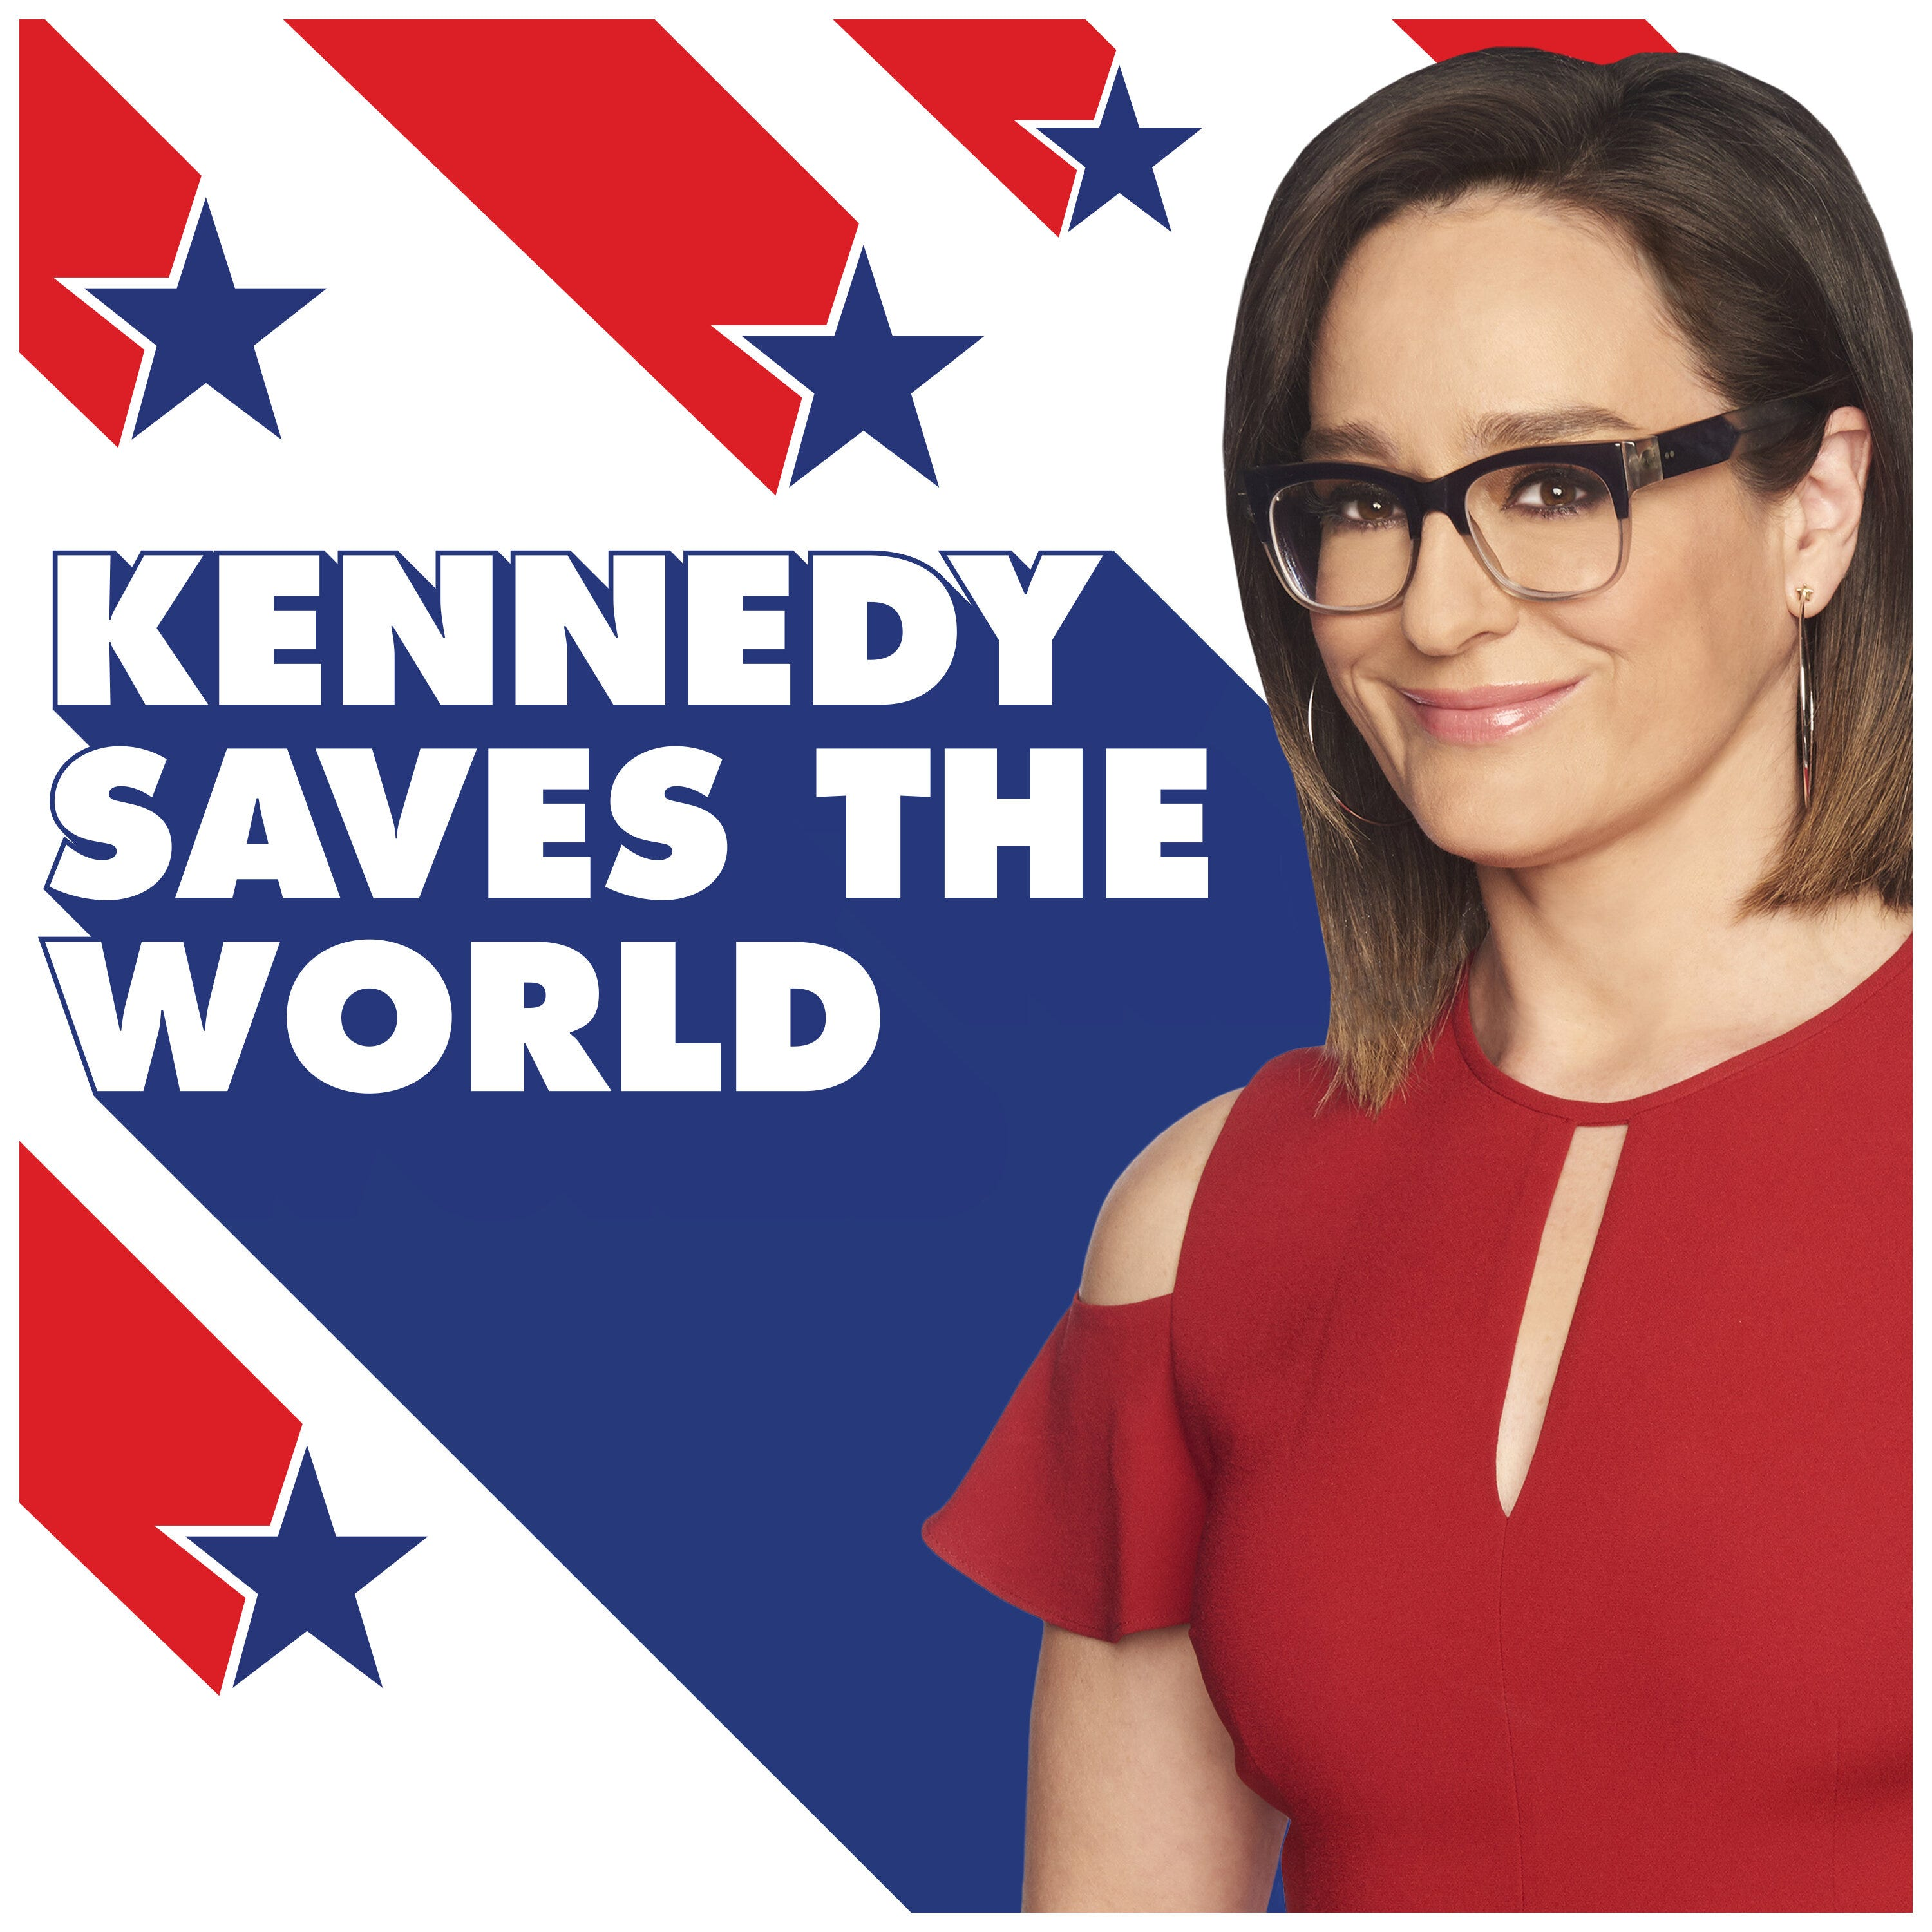 Kennedy Saves the World